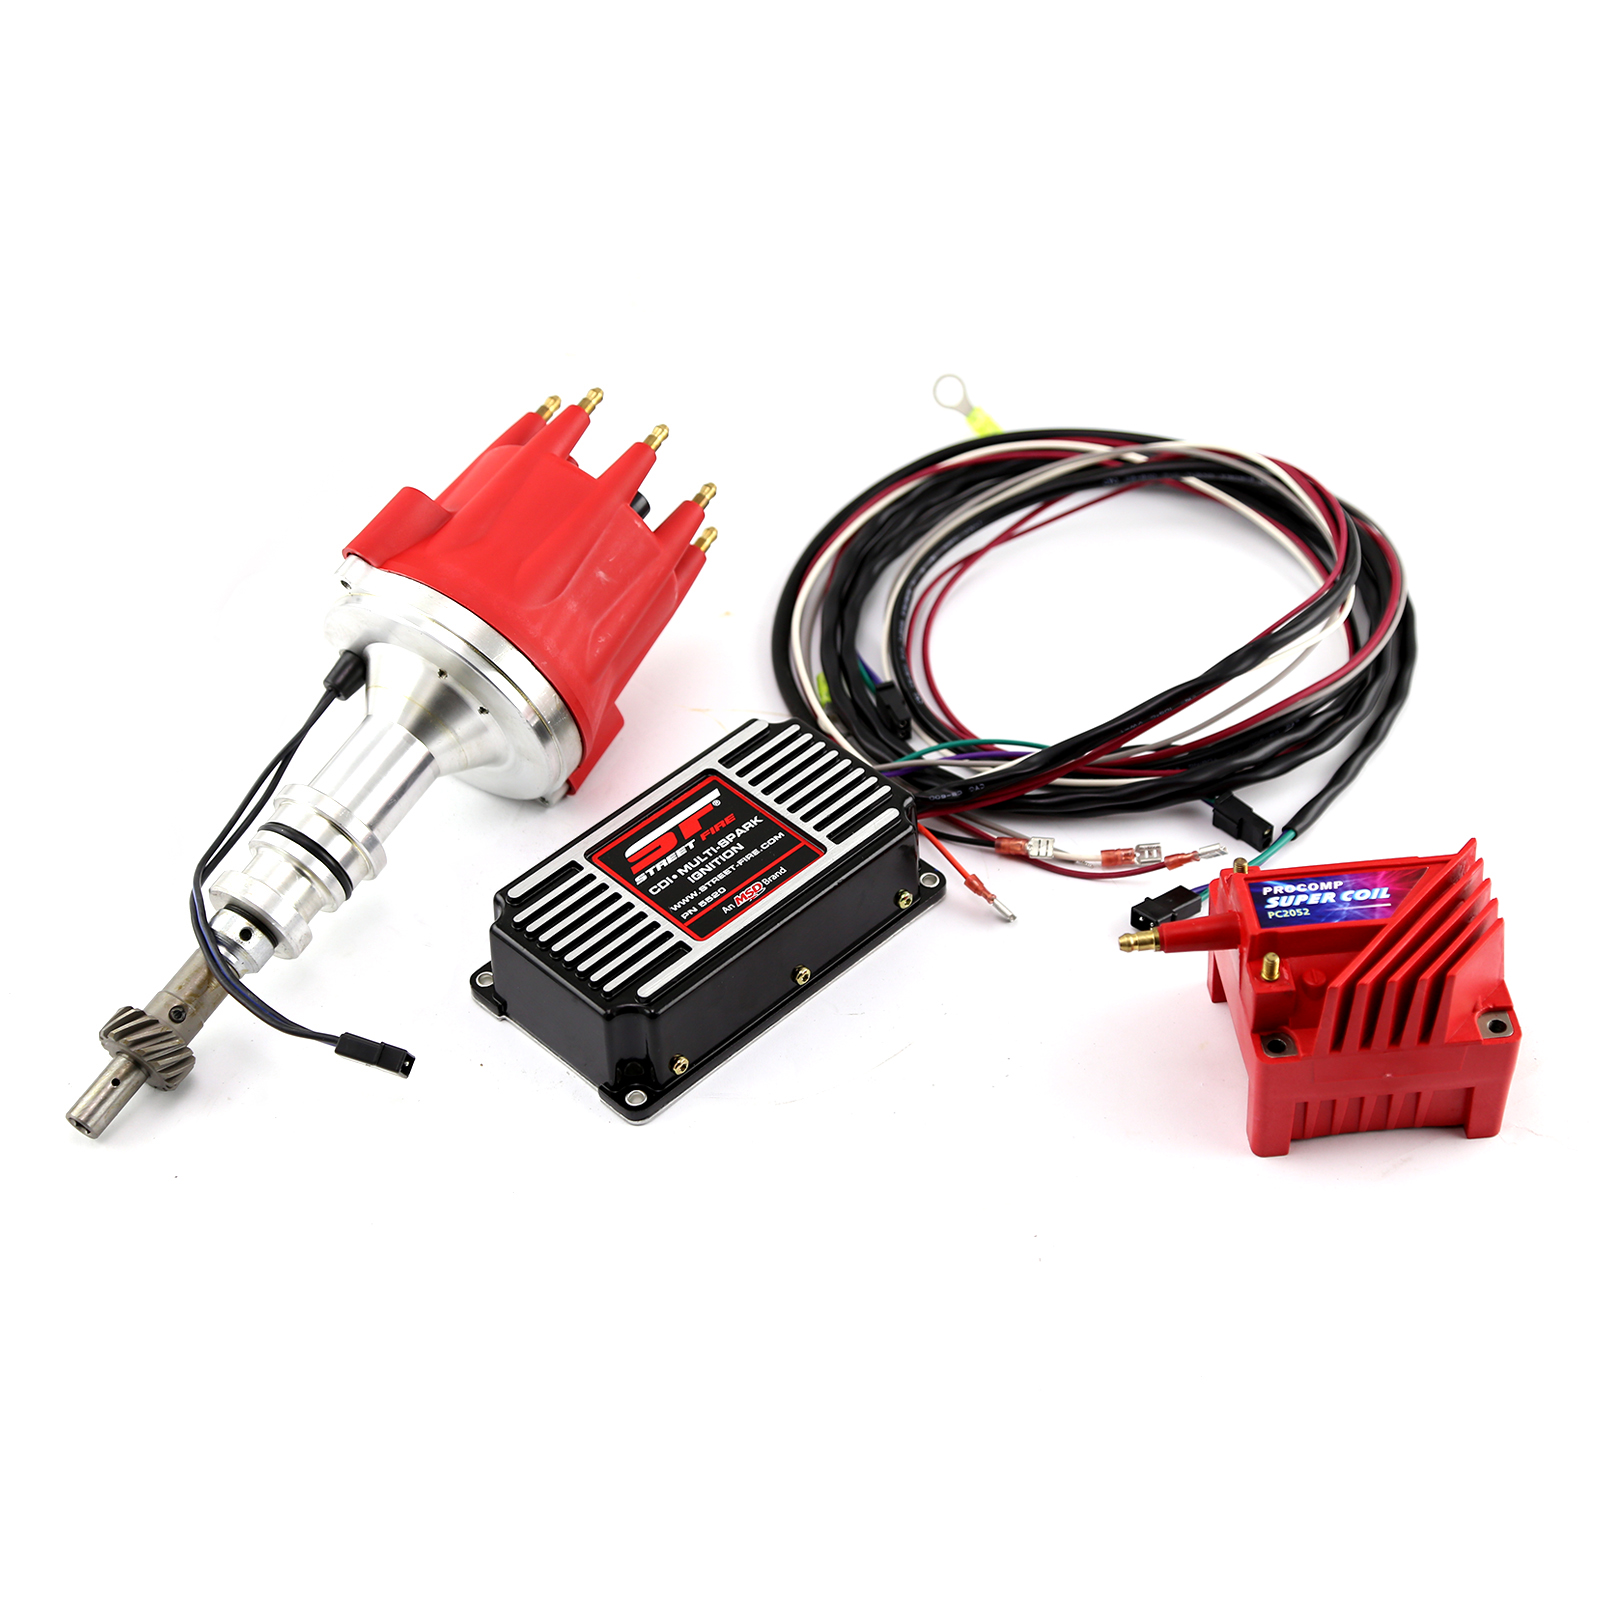 MSD, PCE Ford 302C 351C Cleveland Pro Billet Distributor MSD CDI 5520 Ignition & Coil Kit